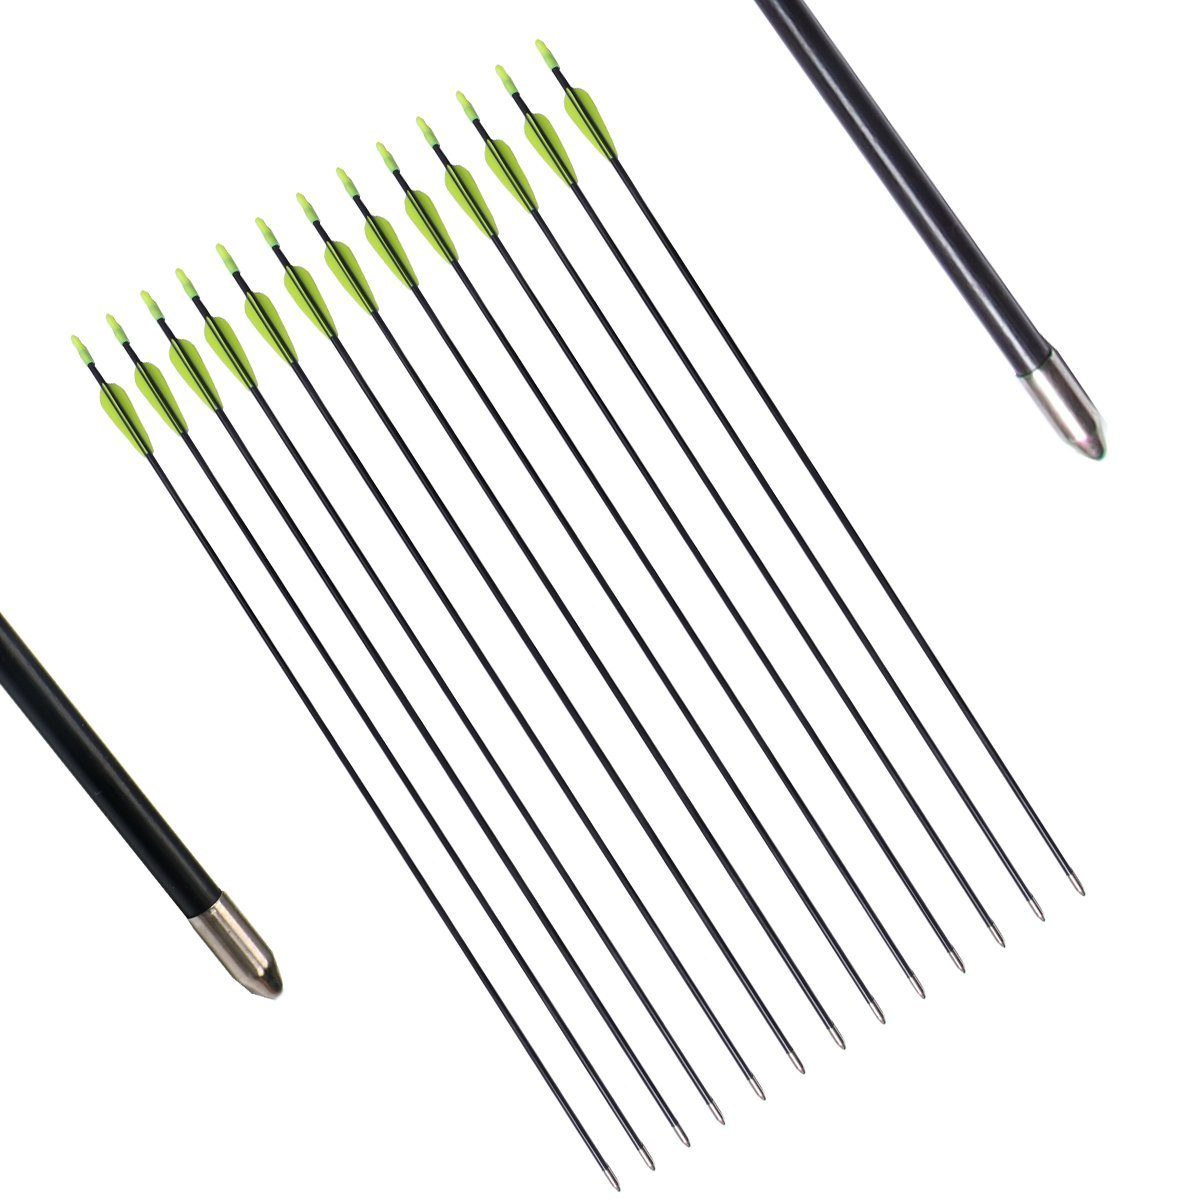 FlyArchery Fiberglass Arrows For Youth Longbow And Kid Bow, Recurve Compoound Bow(Pack of 12)